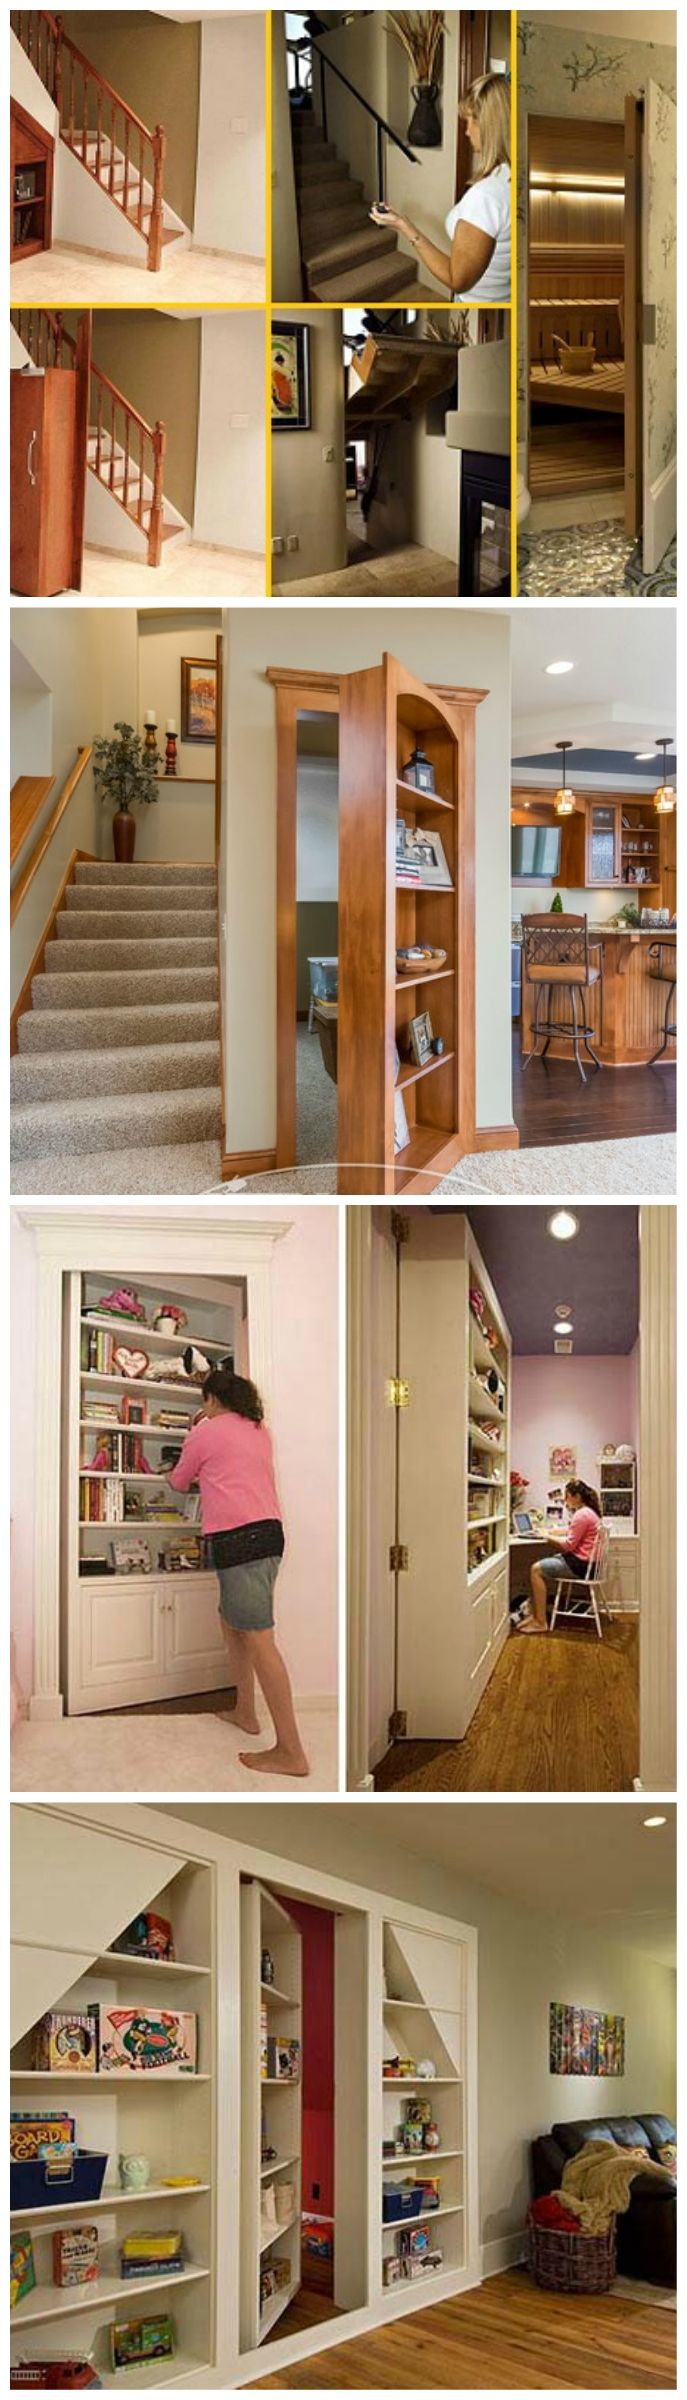 15 Hidden Room Ideas For Your Home